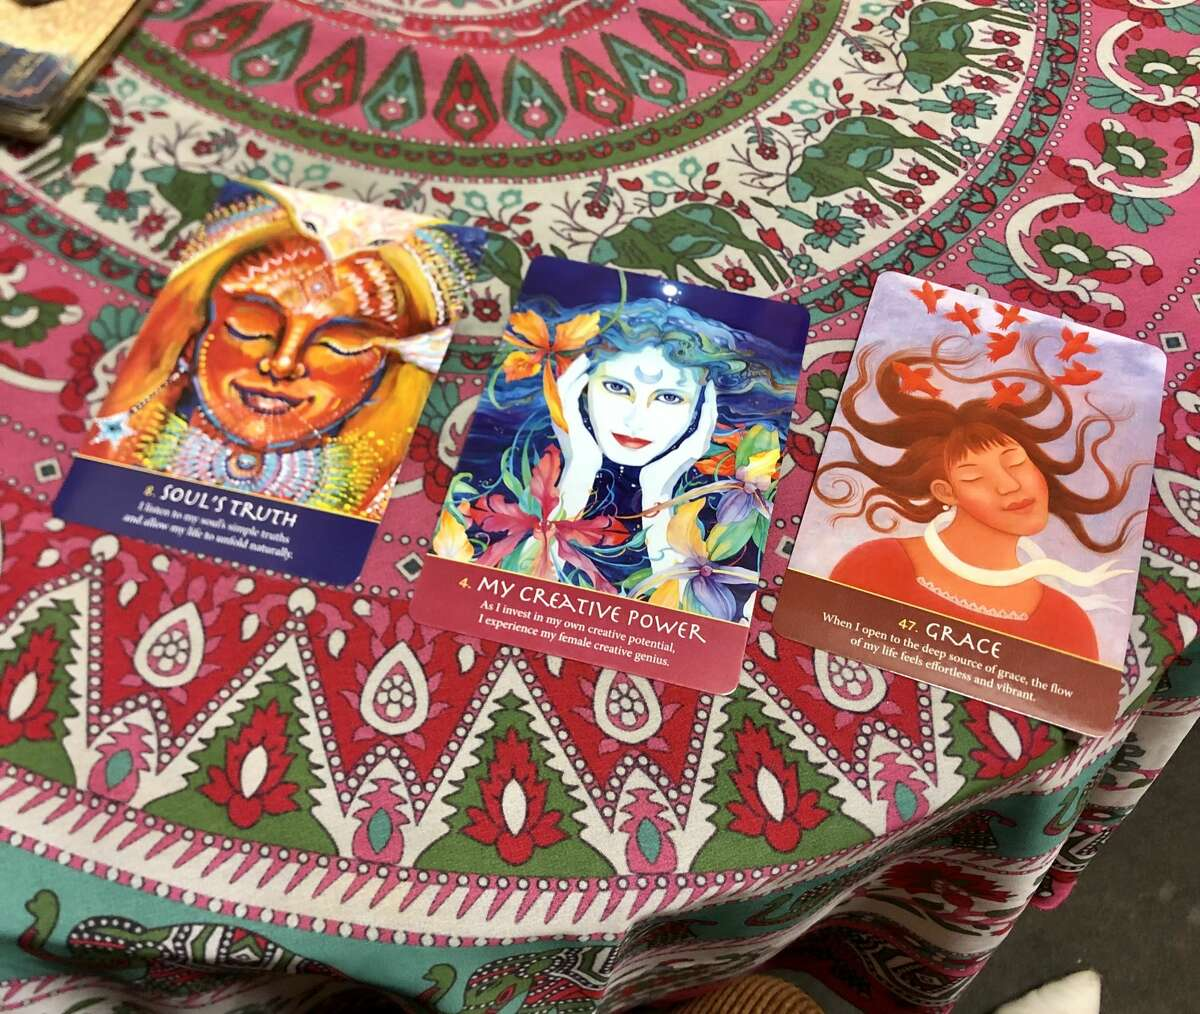 A soul spread tarot reading at the Unlimited Thought Life Enrichment Center.